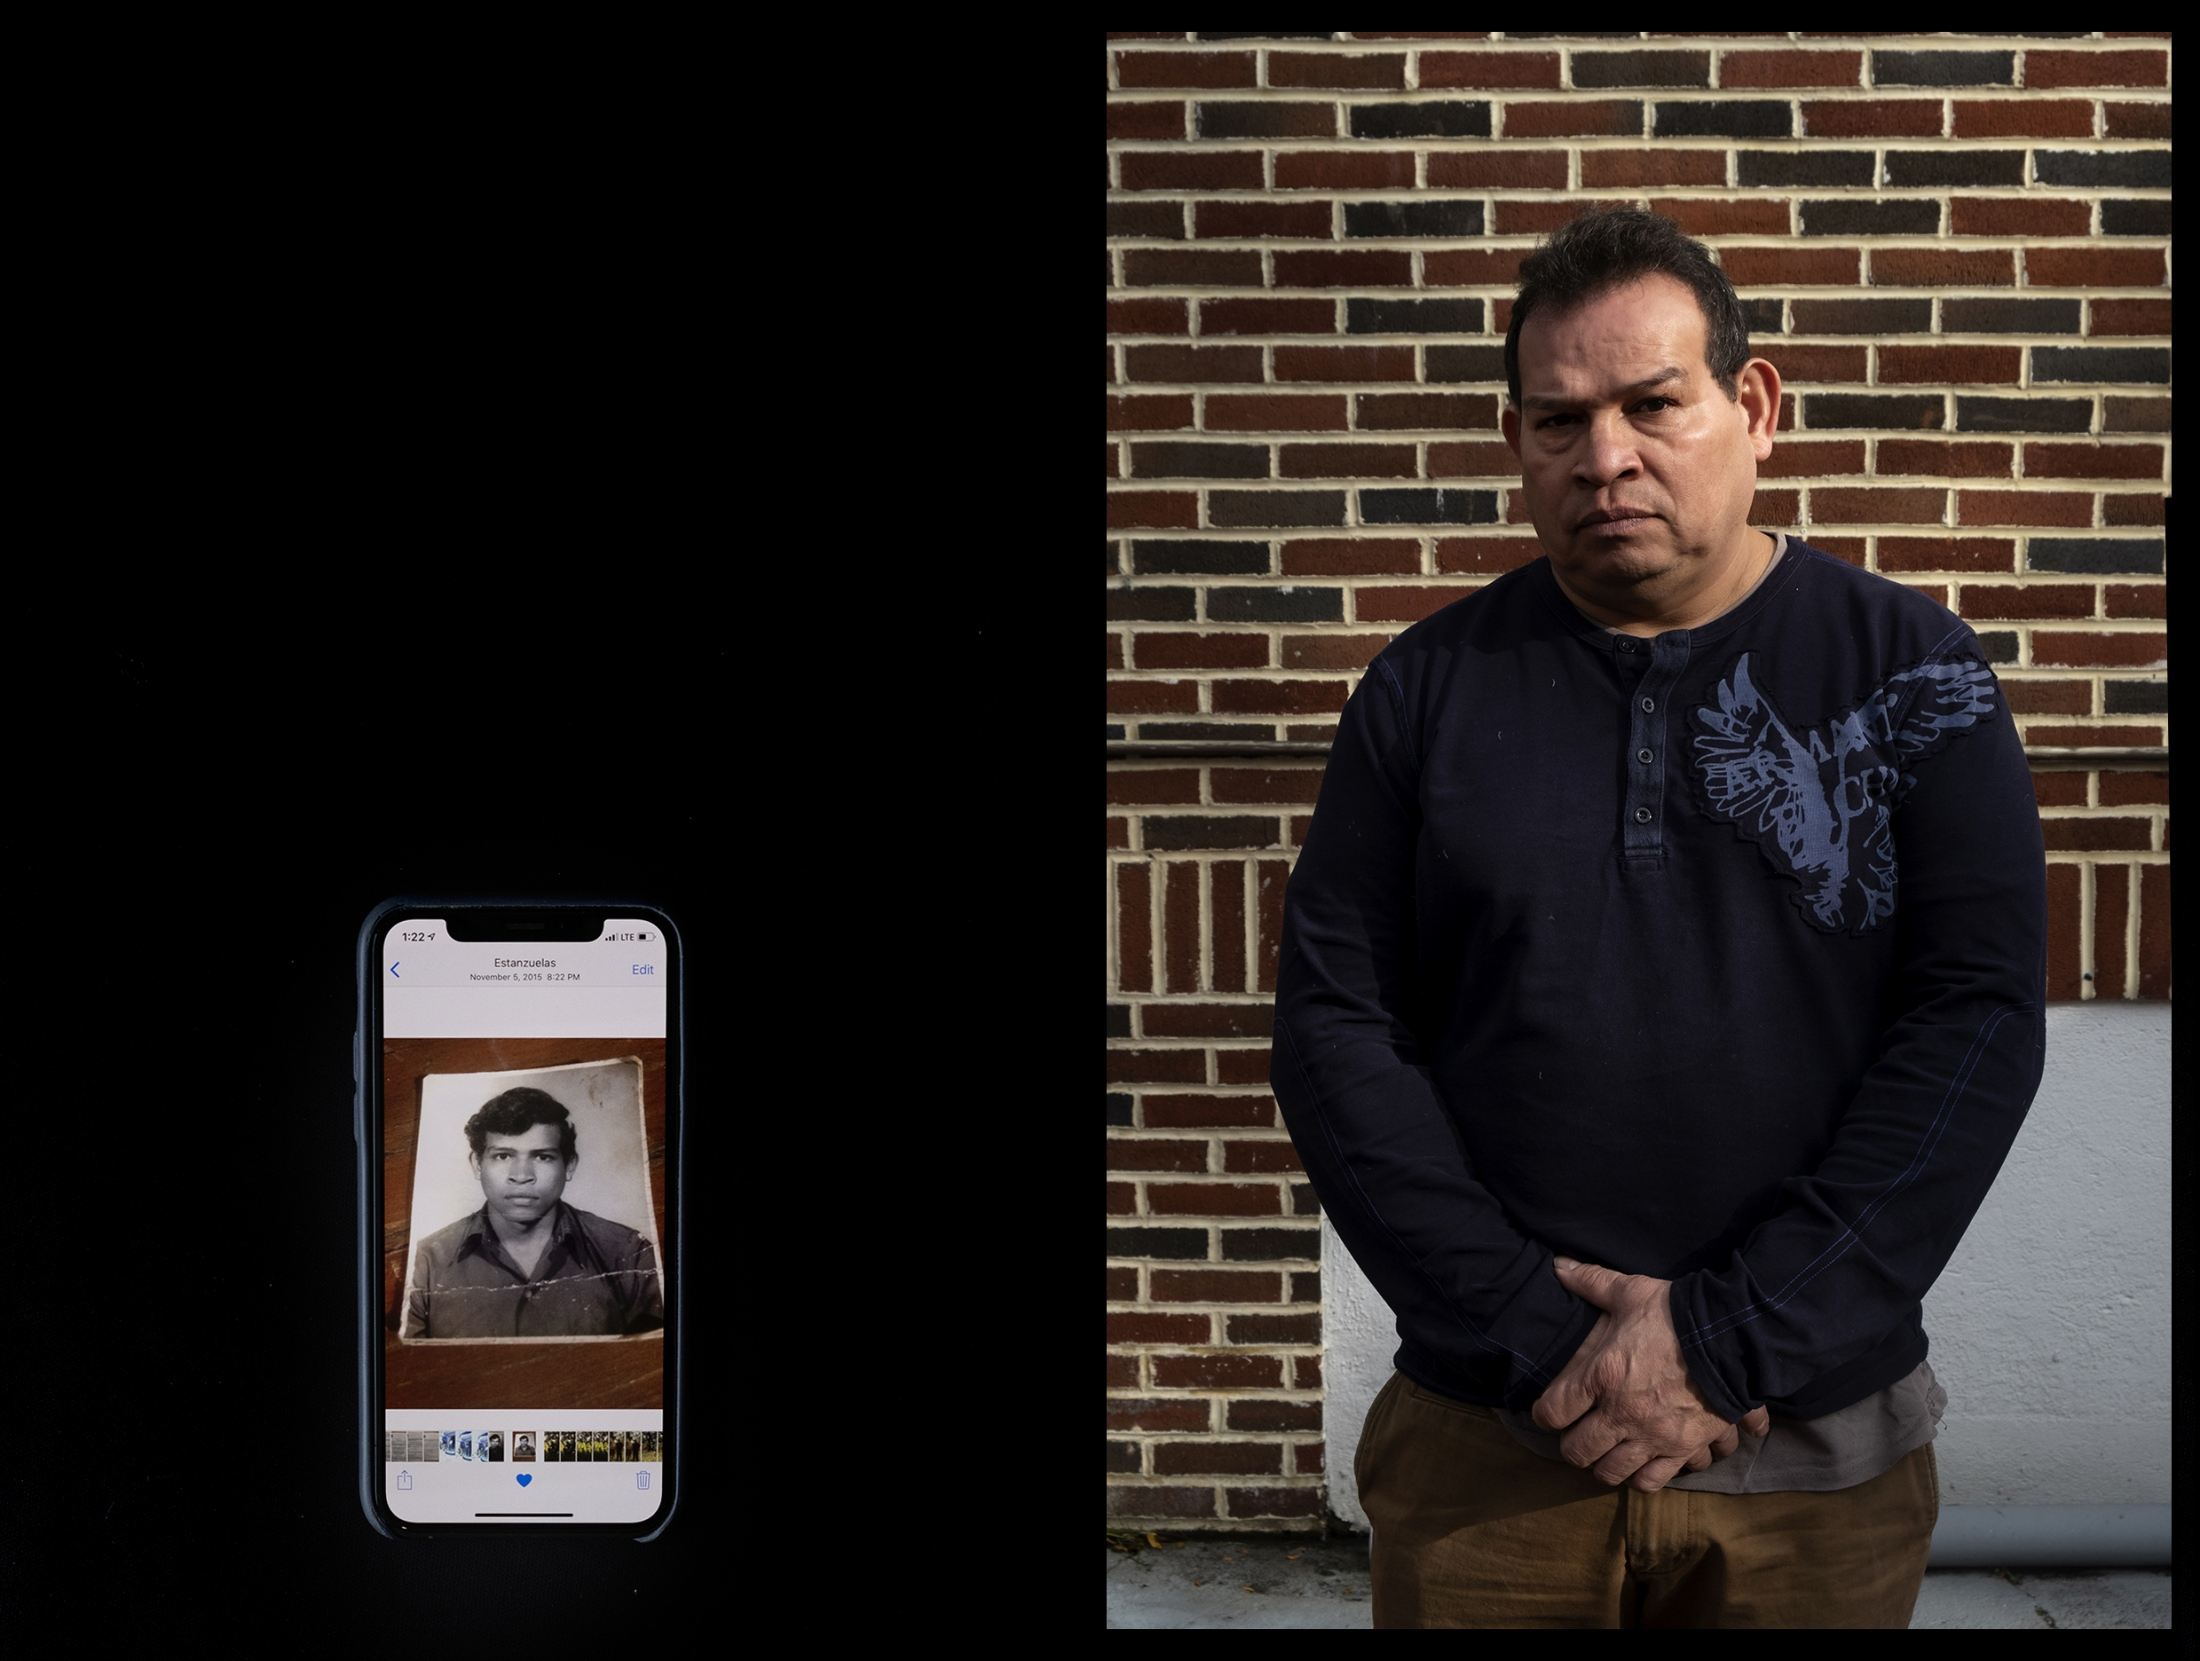 "At age 15, traveling on his own, Amilcar Ramirez, 50, fled the violence of his home country in El Salvador and headed north through Mexico to the U.S. border. He crossed illegally and for 34 years he lived in the shadows until last year, when he was able to apply for US citizenship.      As a U.S. resident he feels more free and protected. ""It was important for me to become a citizen because it has allowed me to travel and see new places, like Puerto Rico,"" Ramirez said. Left: A head shot of Amilcar Ramirez taken in 1983 when he prepared the paperwork to cross the U.S.-Mexico border illegally in 1983. Having misplaced the physical image, Ramirez says he is thankful for having saved it on his iPhone."